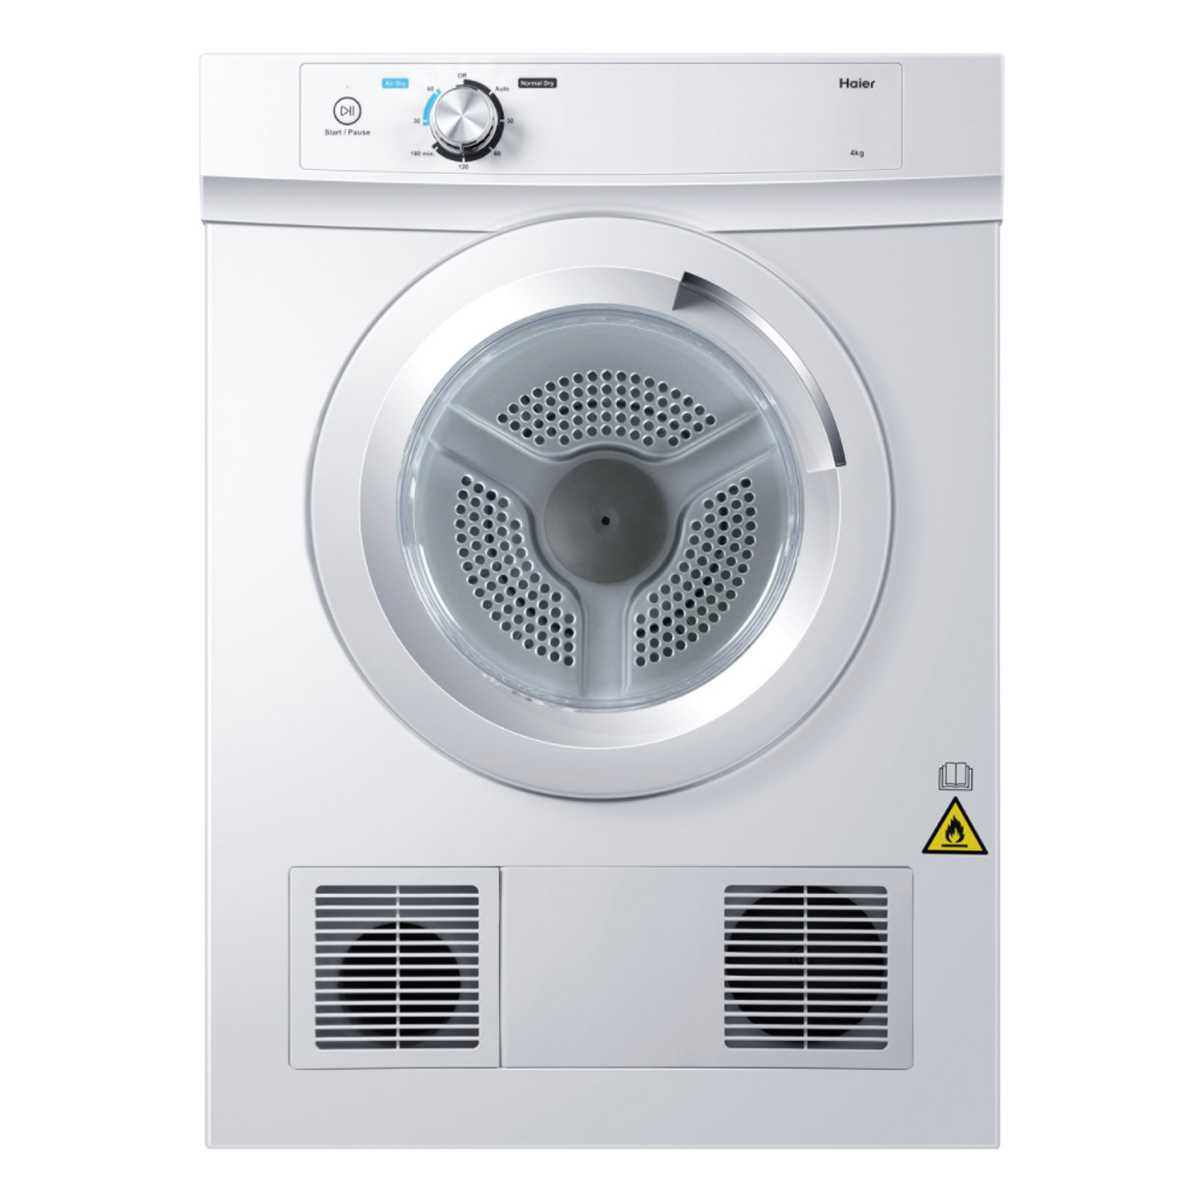 Haier HDV40A1 4kg Vented Dryer